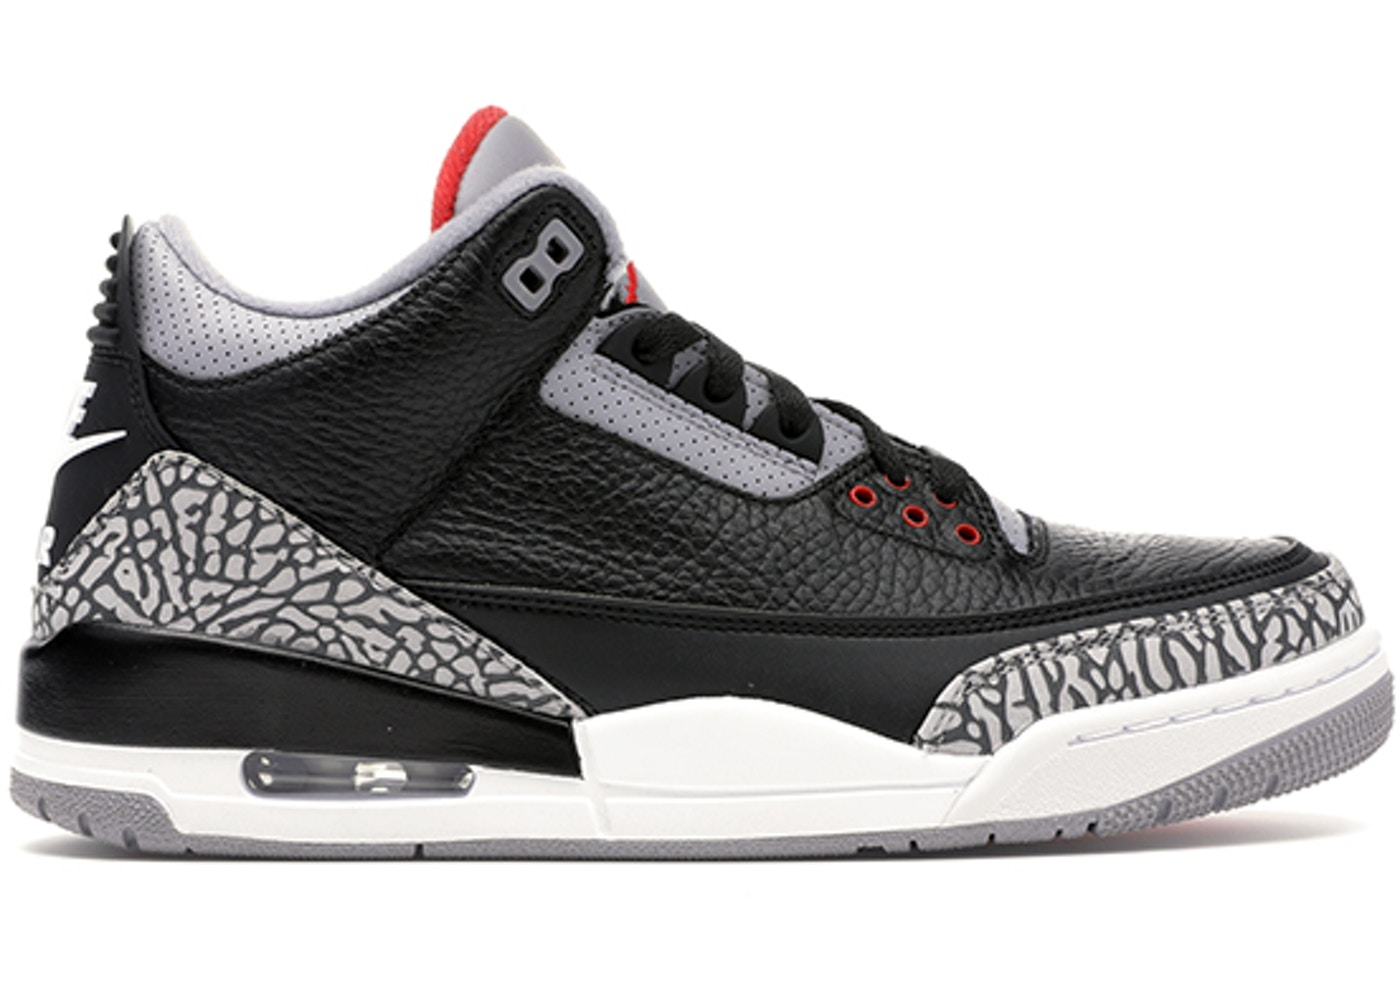 9a29043257bb Jordan 3 Retro Black Cement (2018) - 854262-001